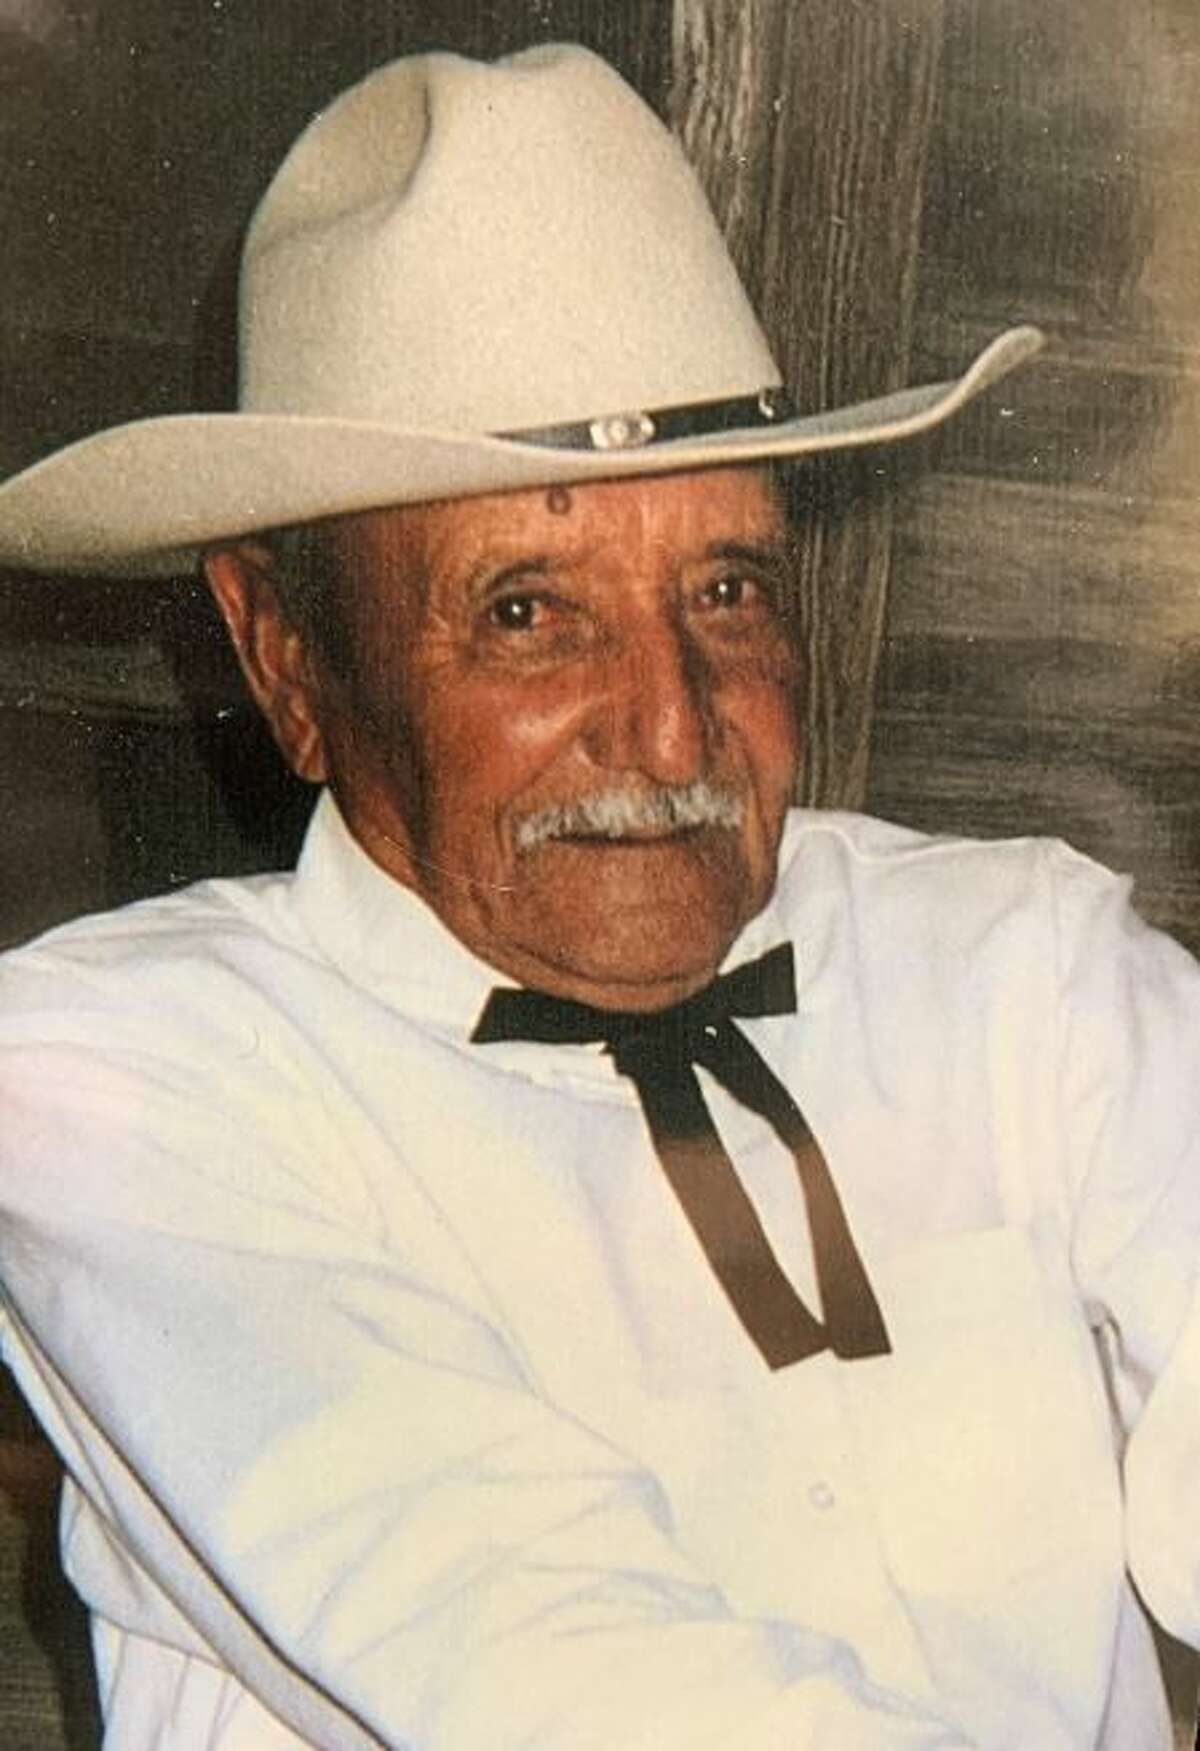 The Texas Department of Public Safety is asking for the public's help in solving the murder of 82-year-old Jose Jasso of Pecos.